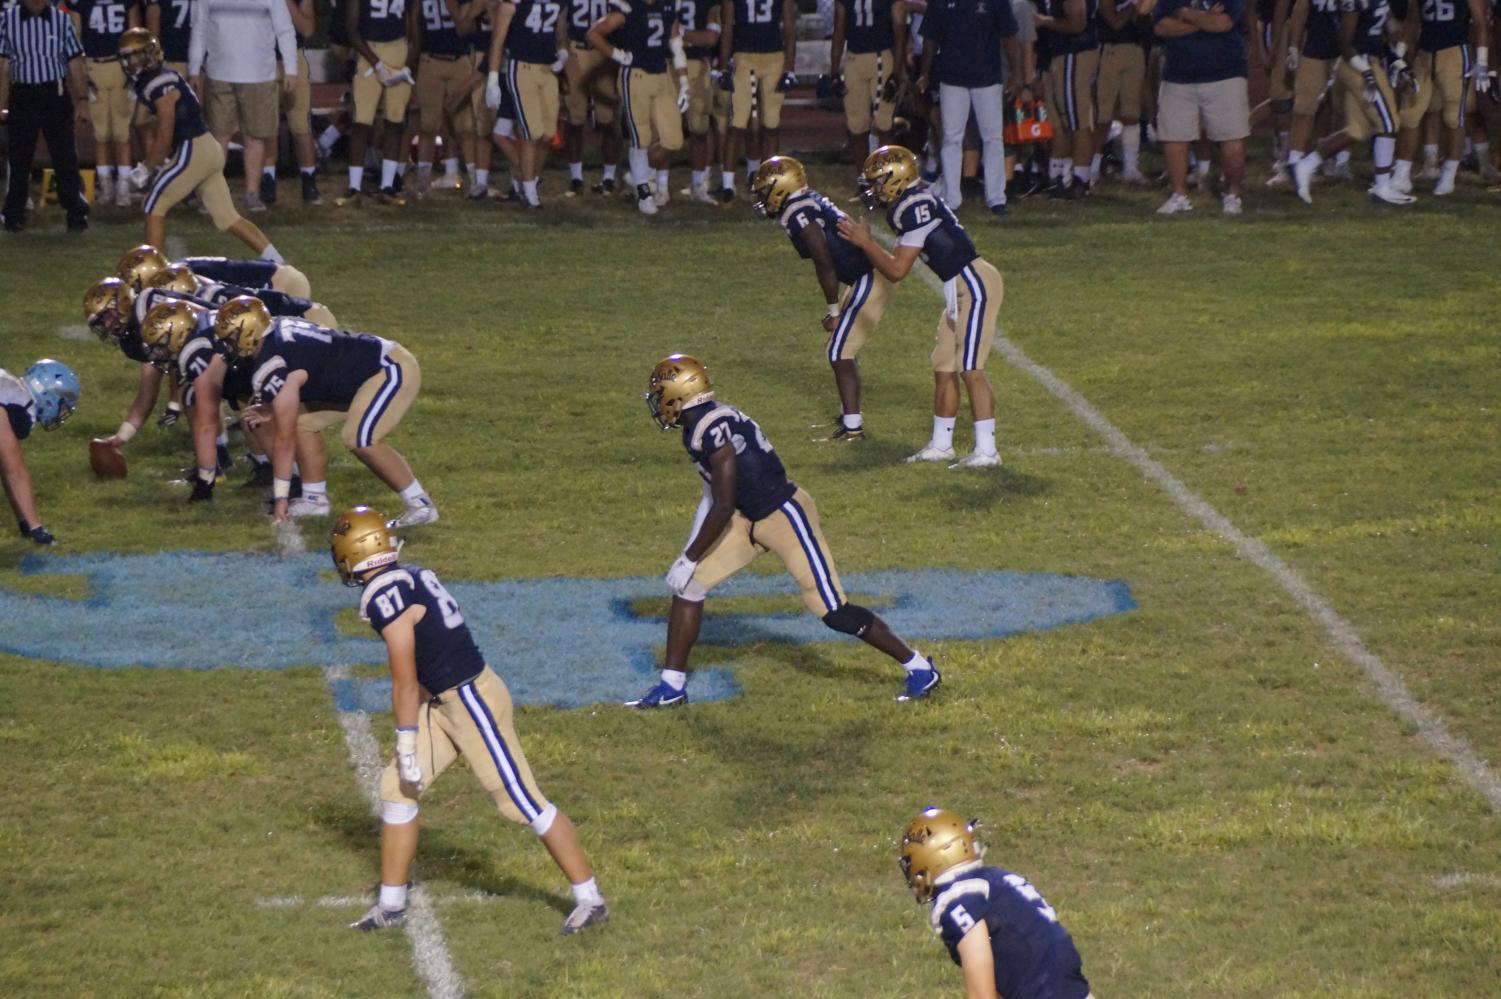 Jack Machita in the shotgun formation with #27 Samuel Brown lined up ready to go out for a pass.  Brown ended the game with 5 touchdowns.